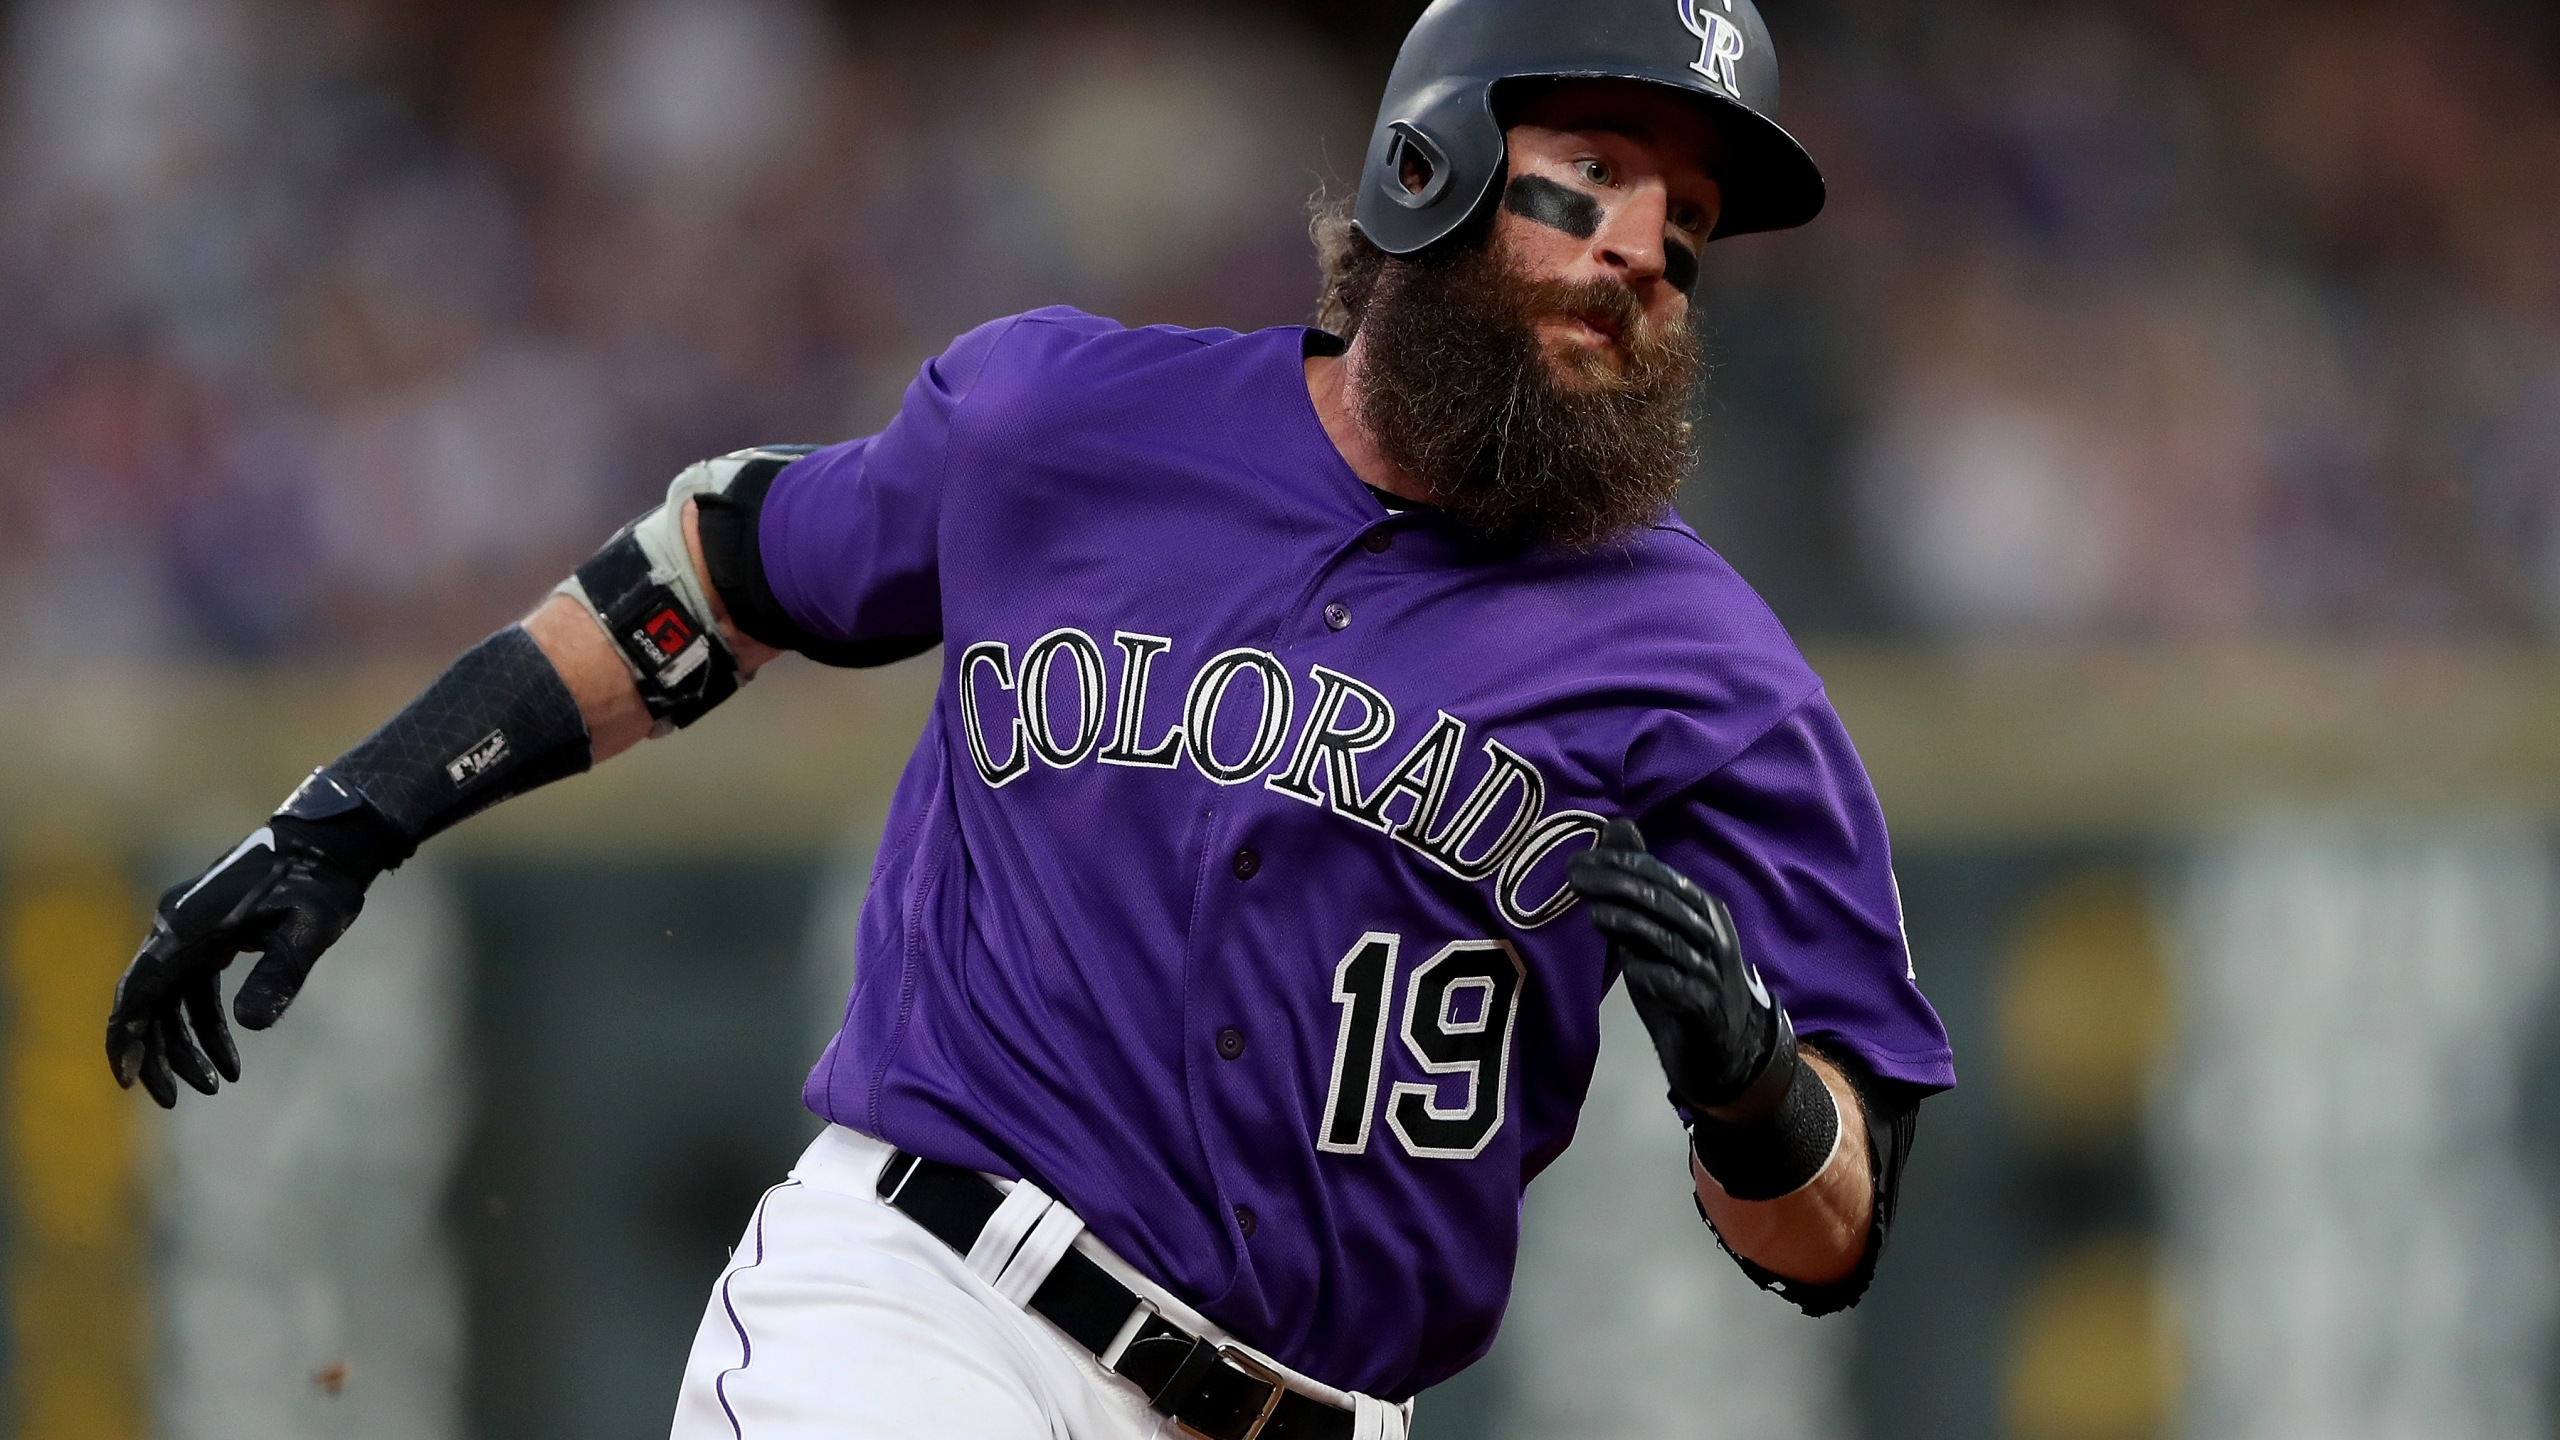 Charlie Blackmon Returns To Rockies After Recovering From Covid 19